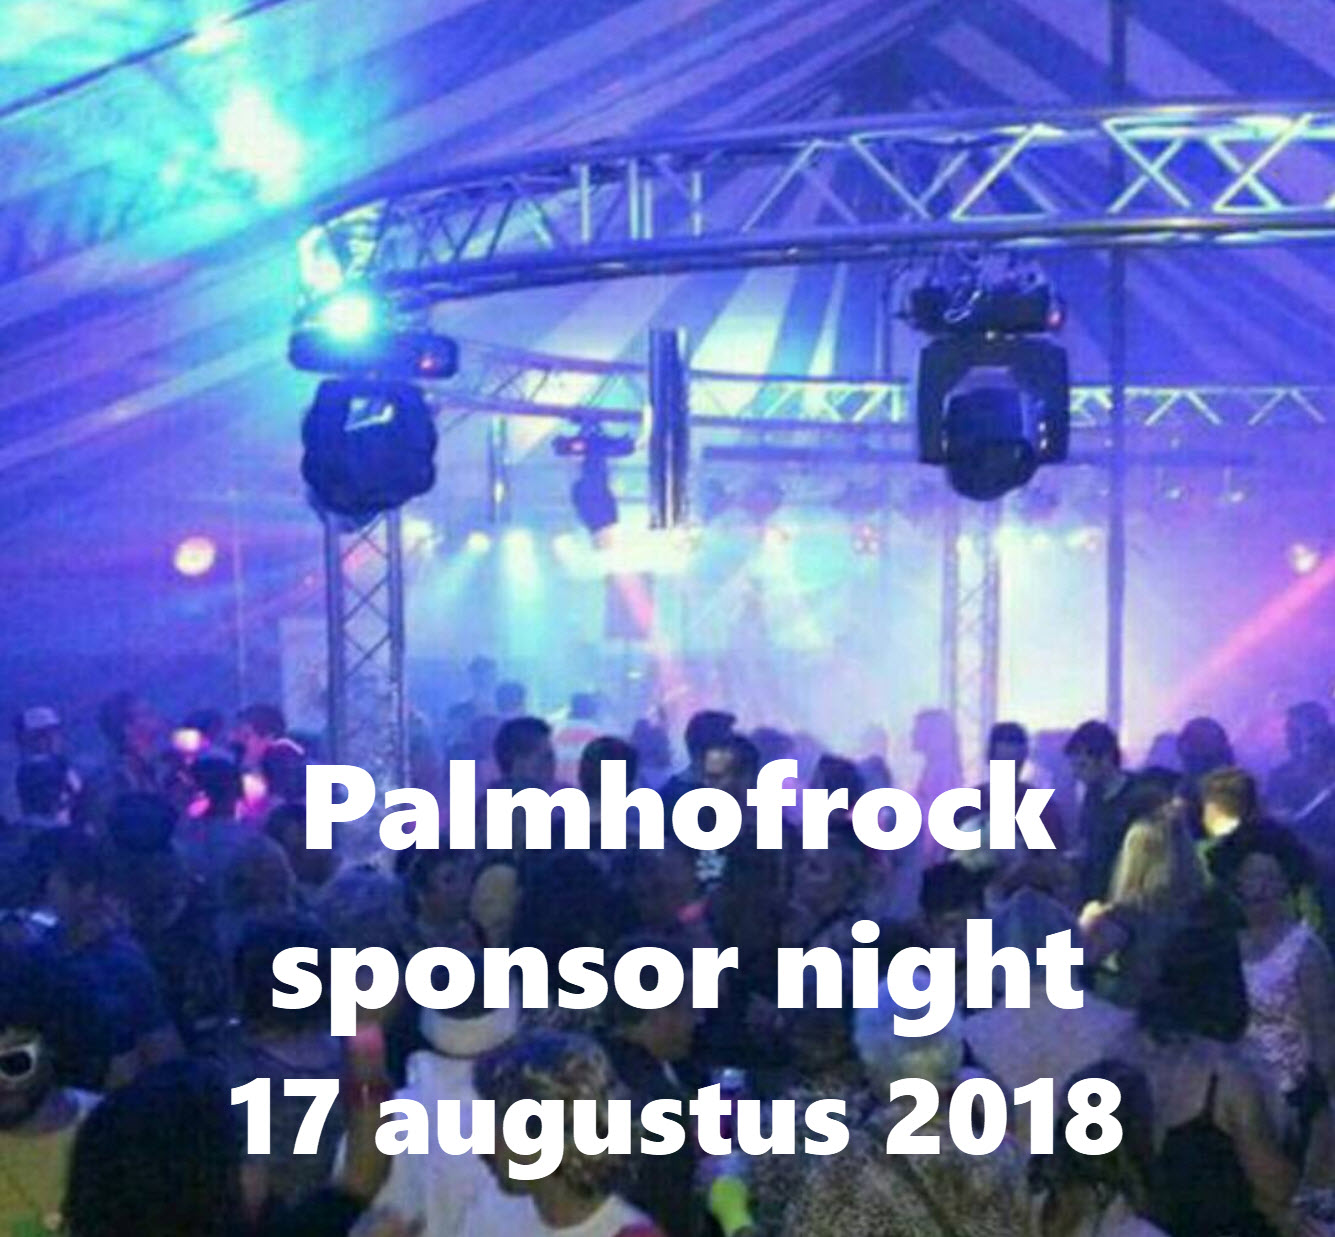 Palmhofrock sponsor night 2018